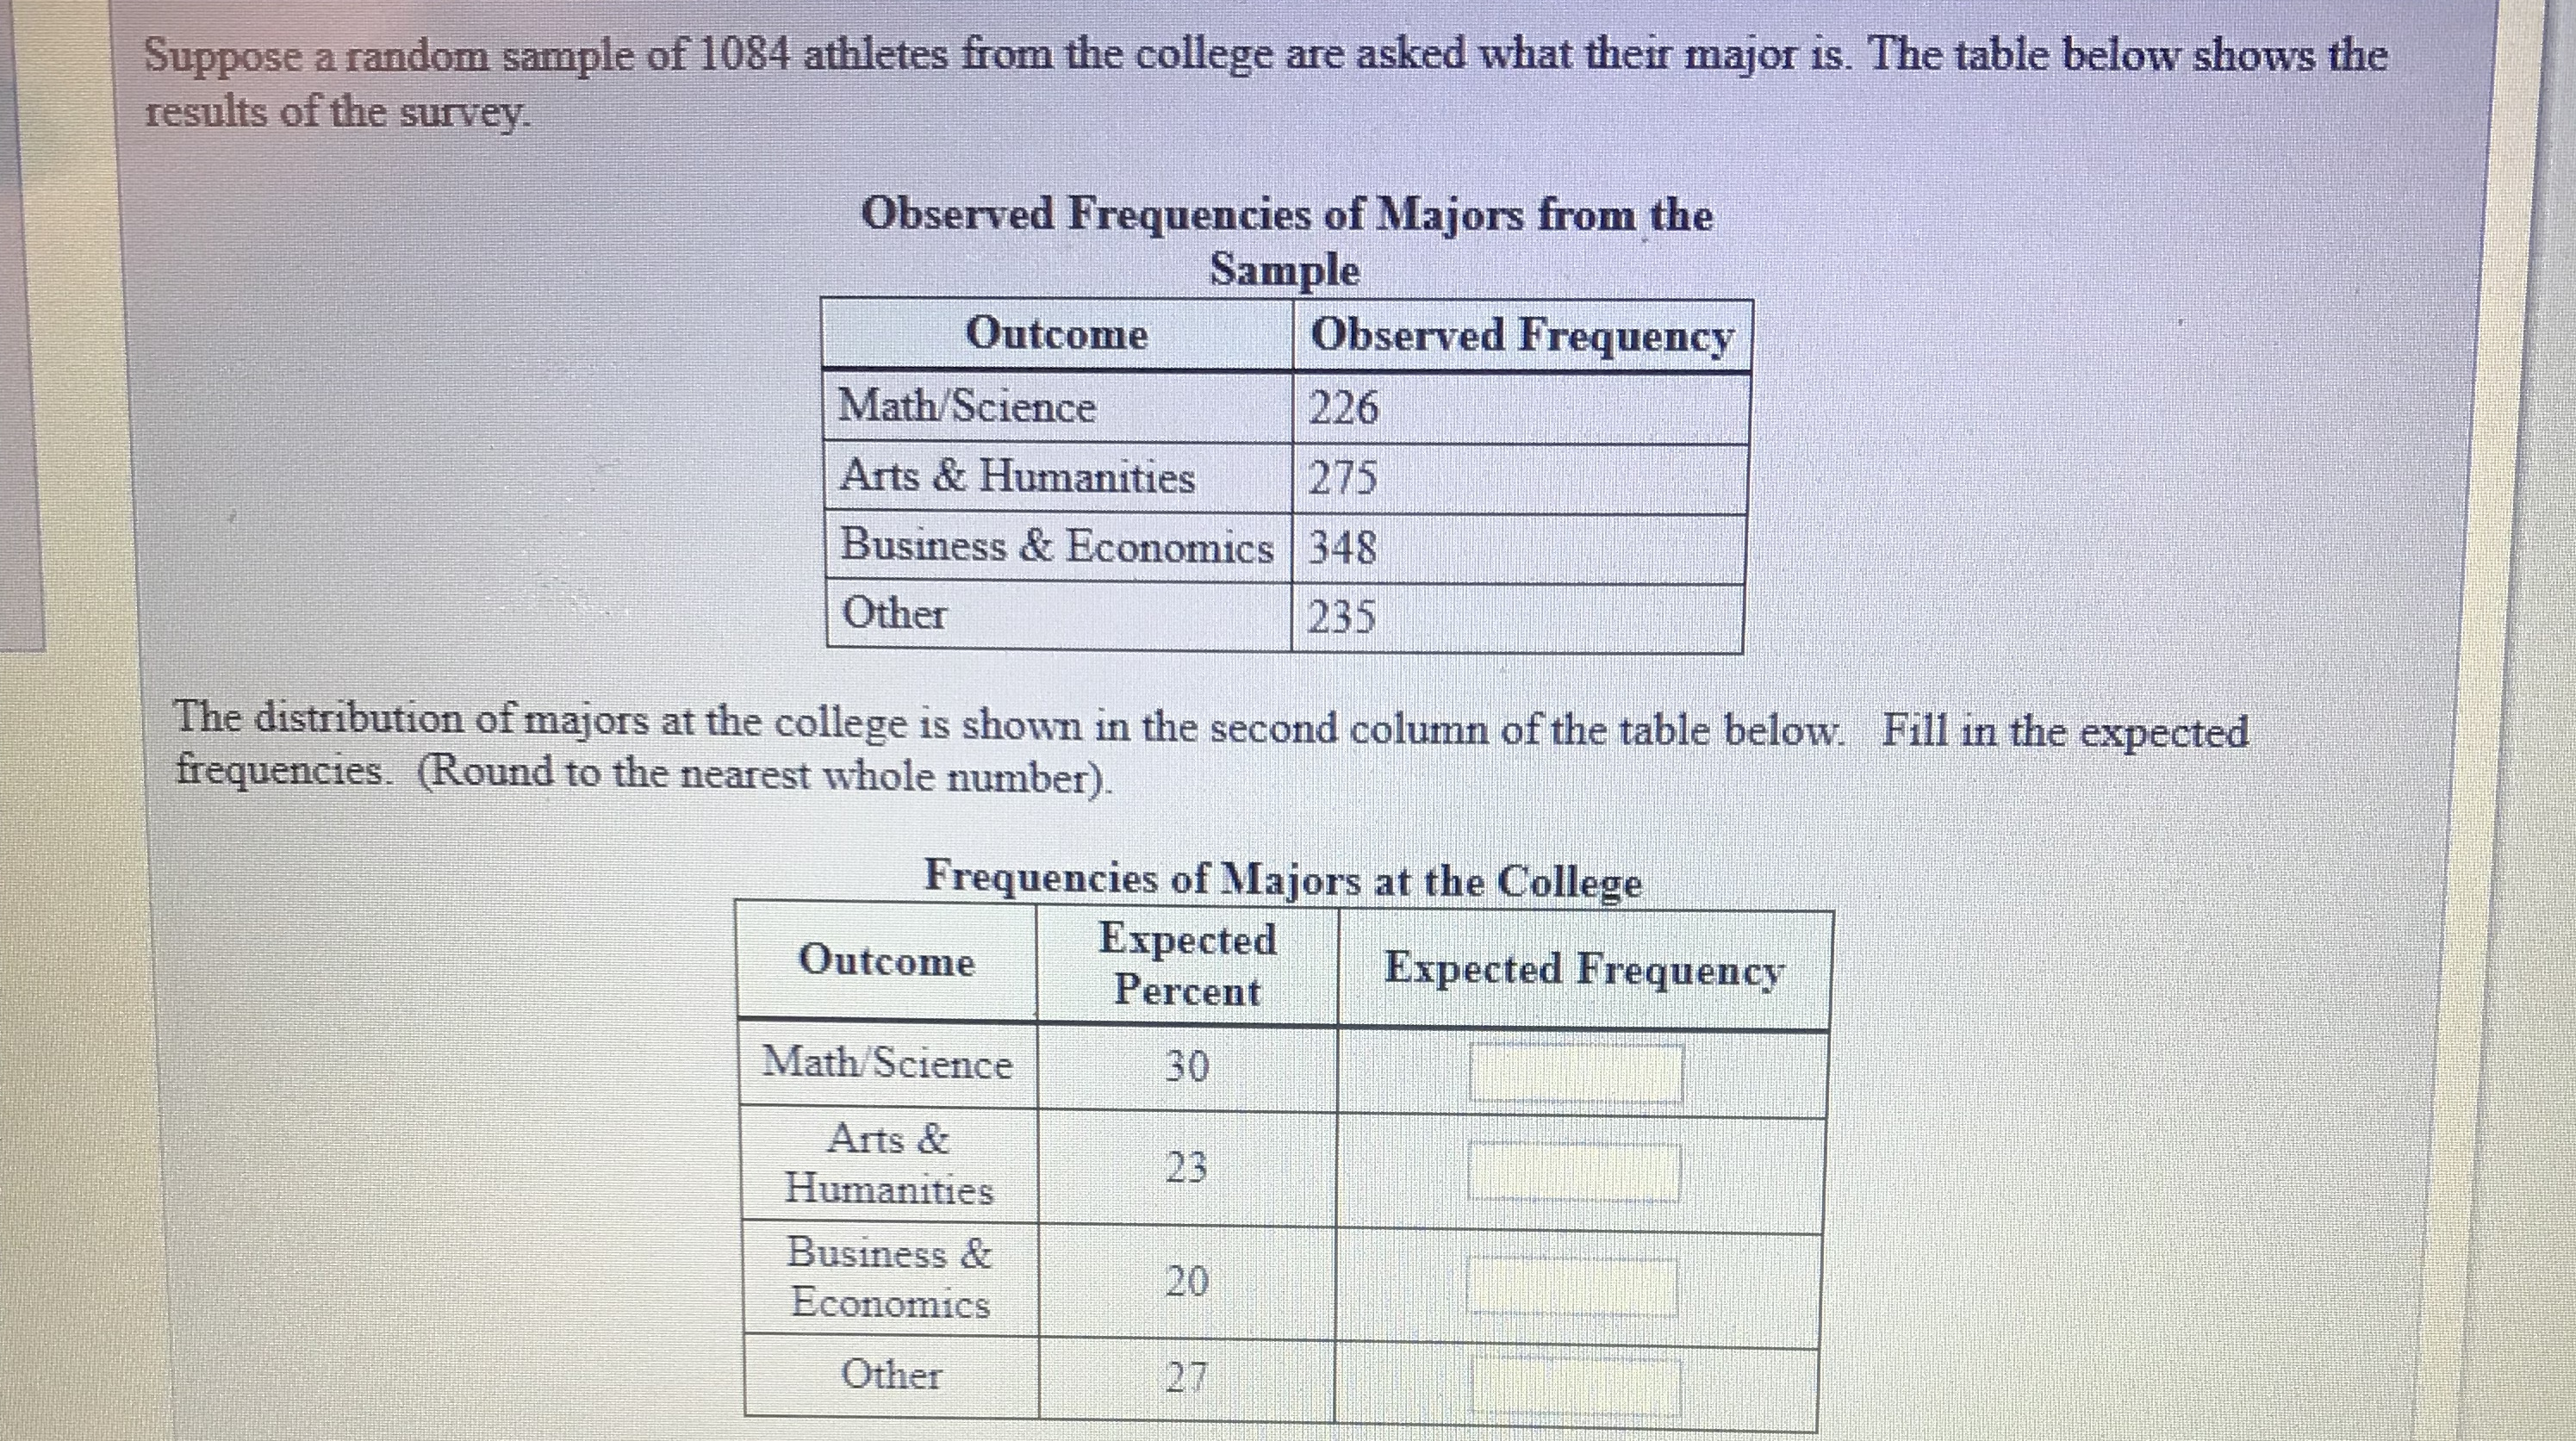 Suppose a random sample of 1084 athletes from the college are asked what their major is. The table below shows the results of the survey. Observed Frequencies of Majors from the Sample Outcome Observed Frequency 226 Math Science Arts & Humanities 275 Business & Economics 348 Other 235 The distribution of majors at the college is shown in the second column of the table below. Fill in the expected frequencies. (Round to the nearest whole number). Frequencies of Majors at the College uoExpected Frequency OutcomeExpected Math Science Arts & Humanities Business & Economics Other 30 23 20 27